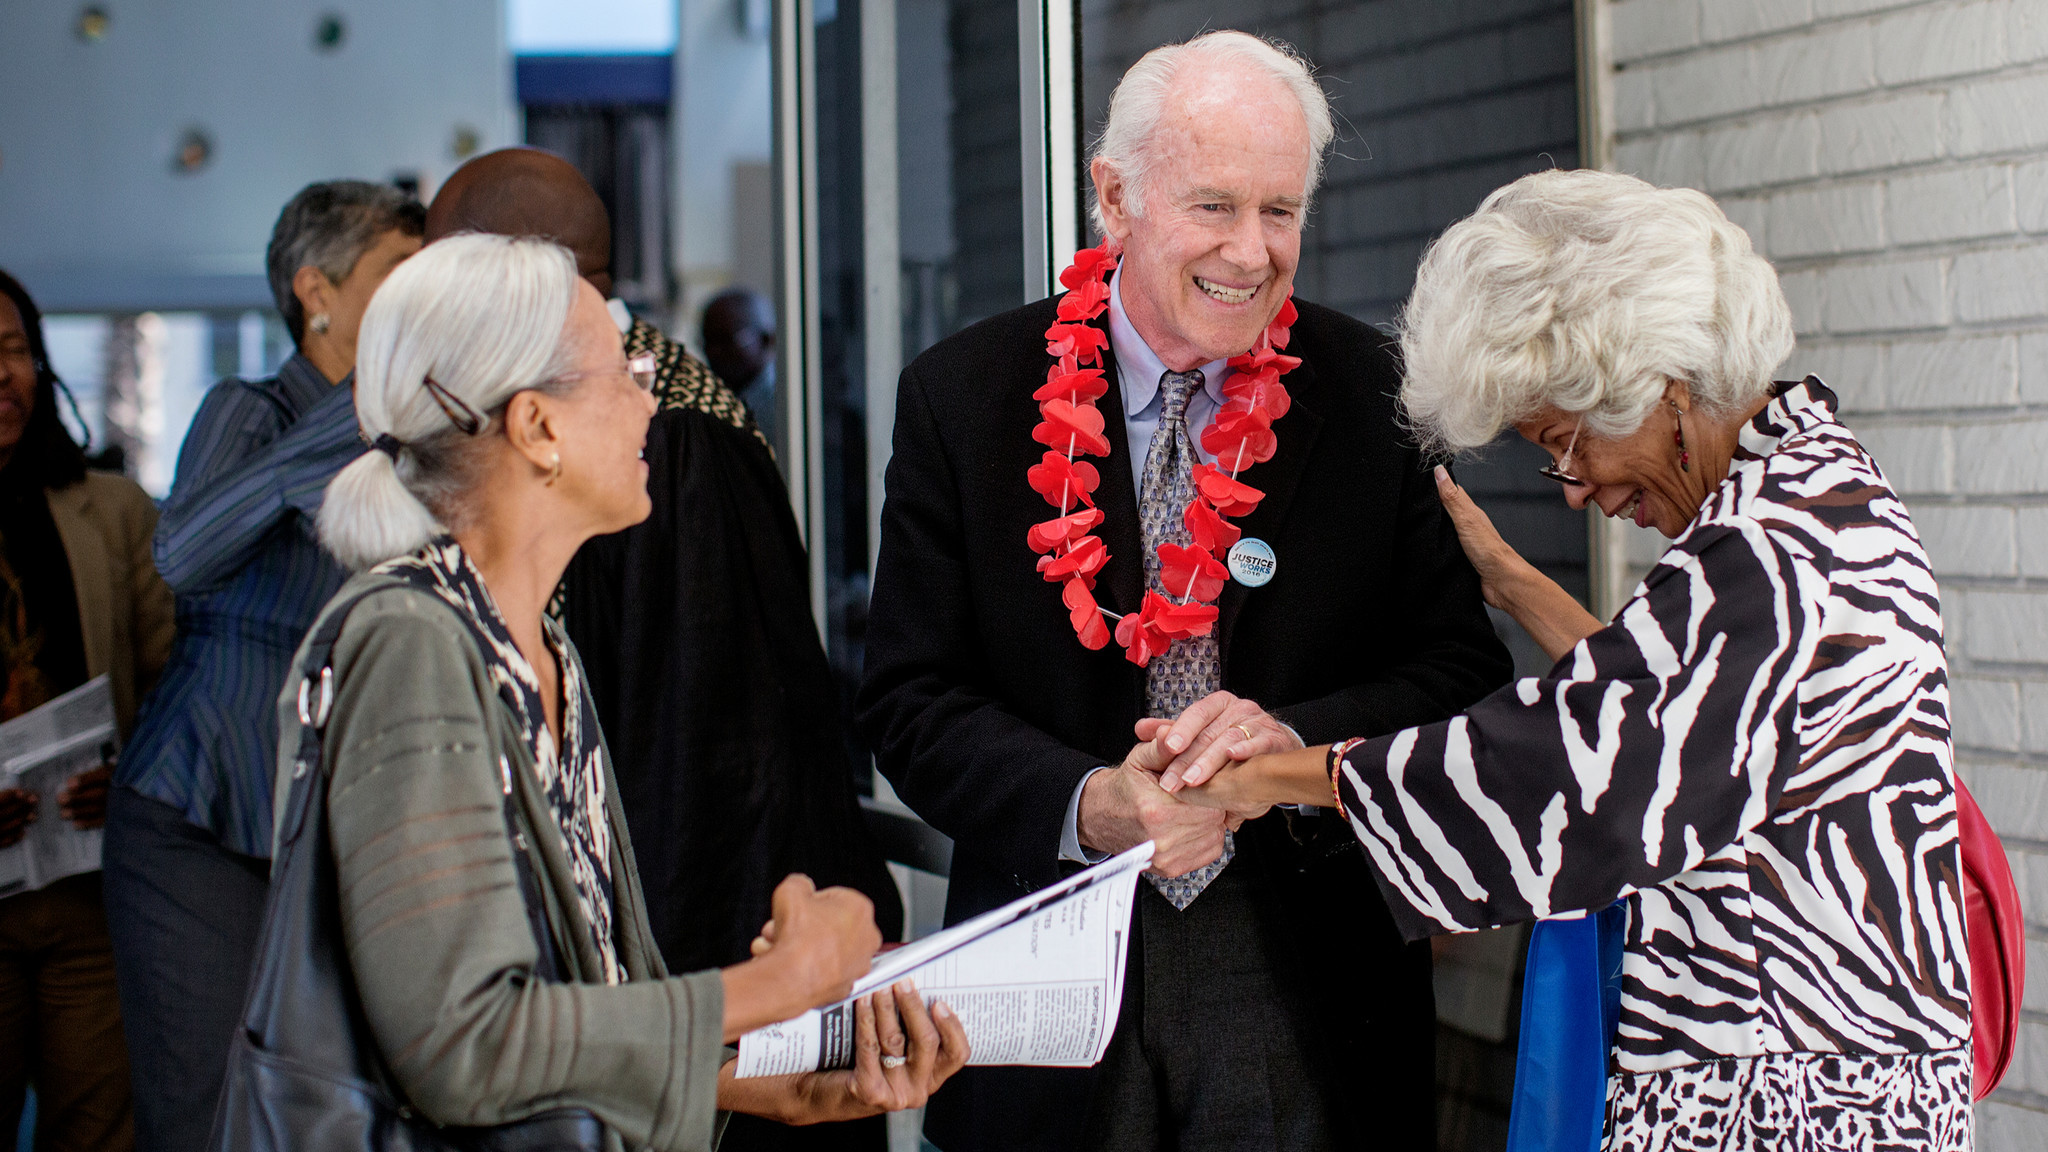 Actor Mike Farrell greets parishioners after speaking in support of Prop 62 at the Holman United Methodist Church.